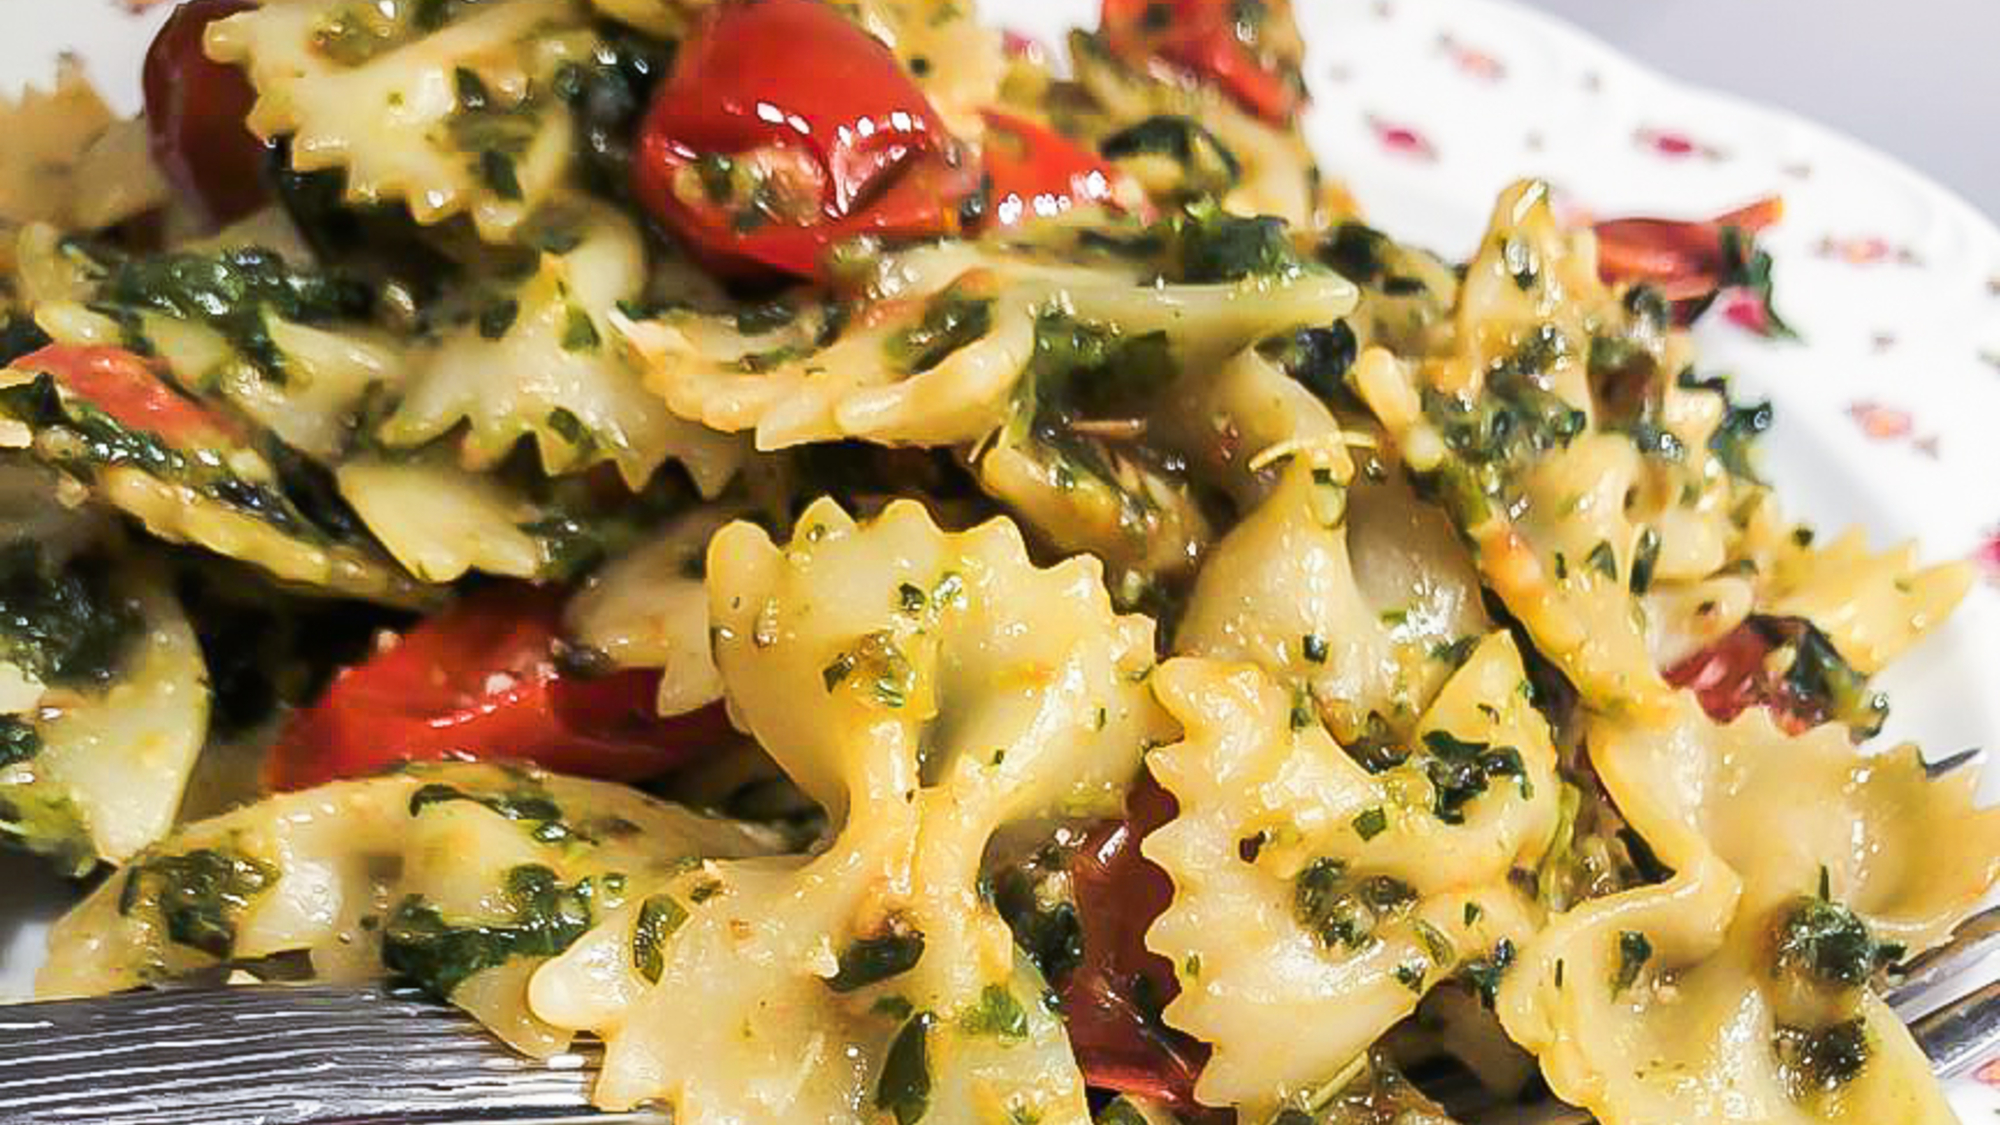 How to cook farfalle pasta in the microwave